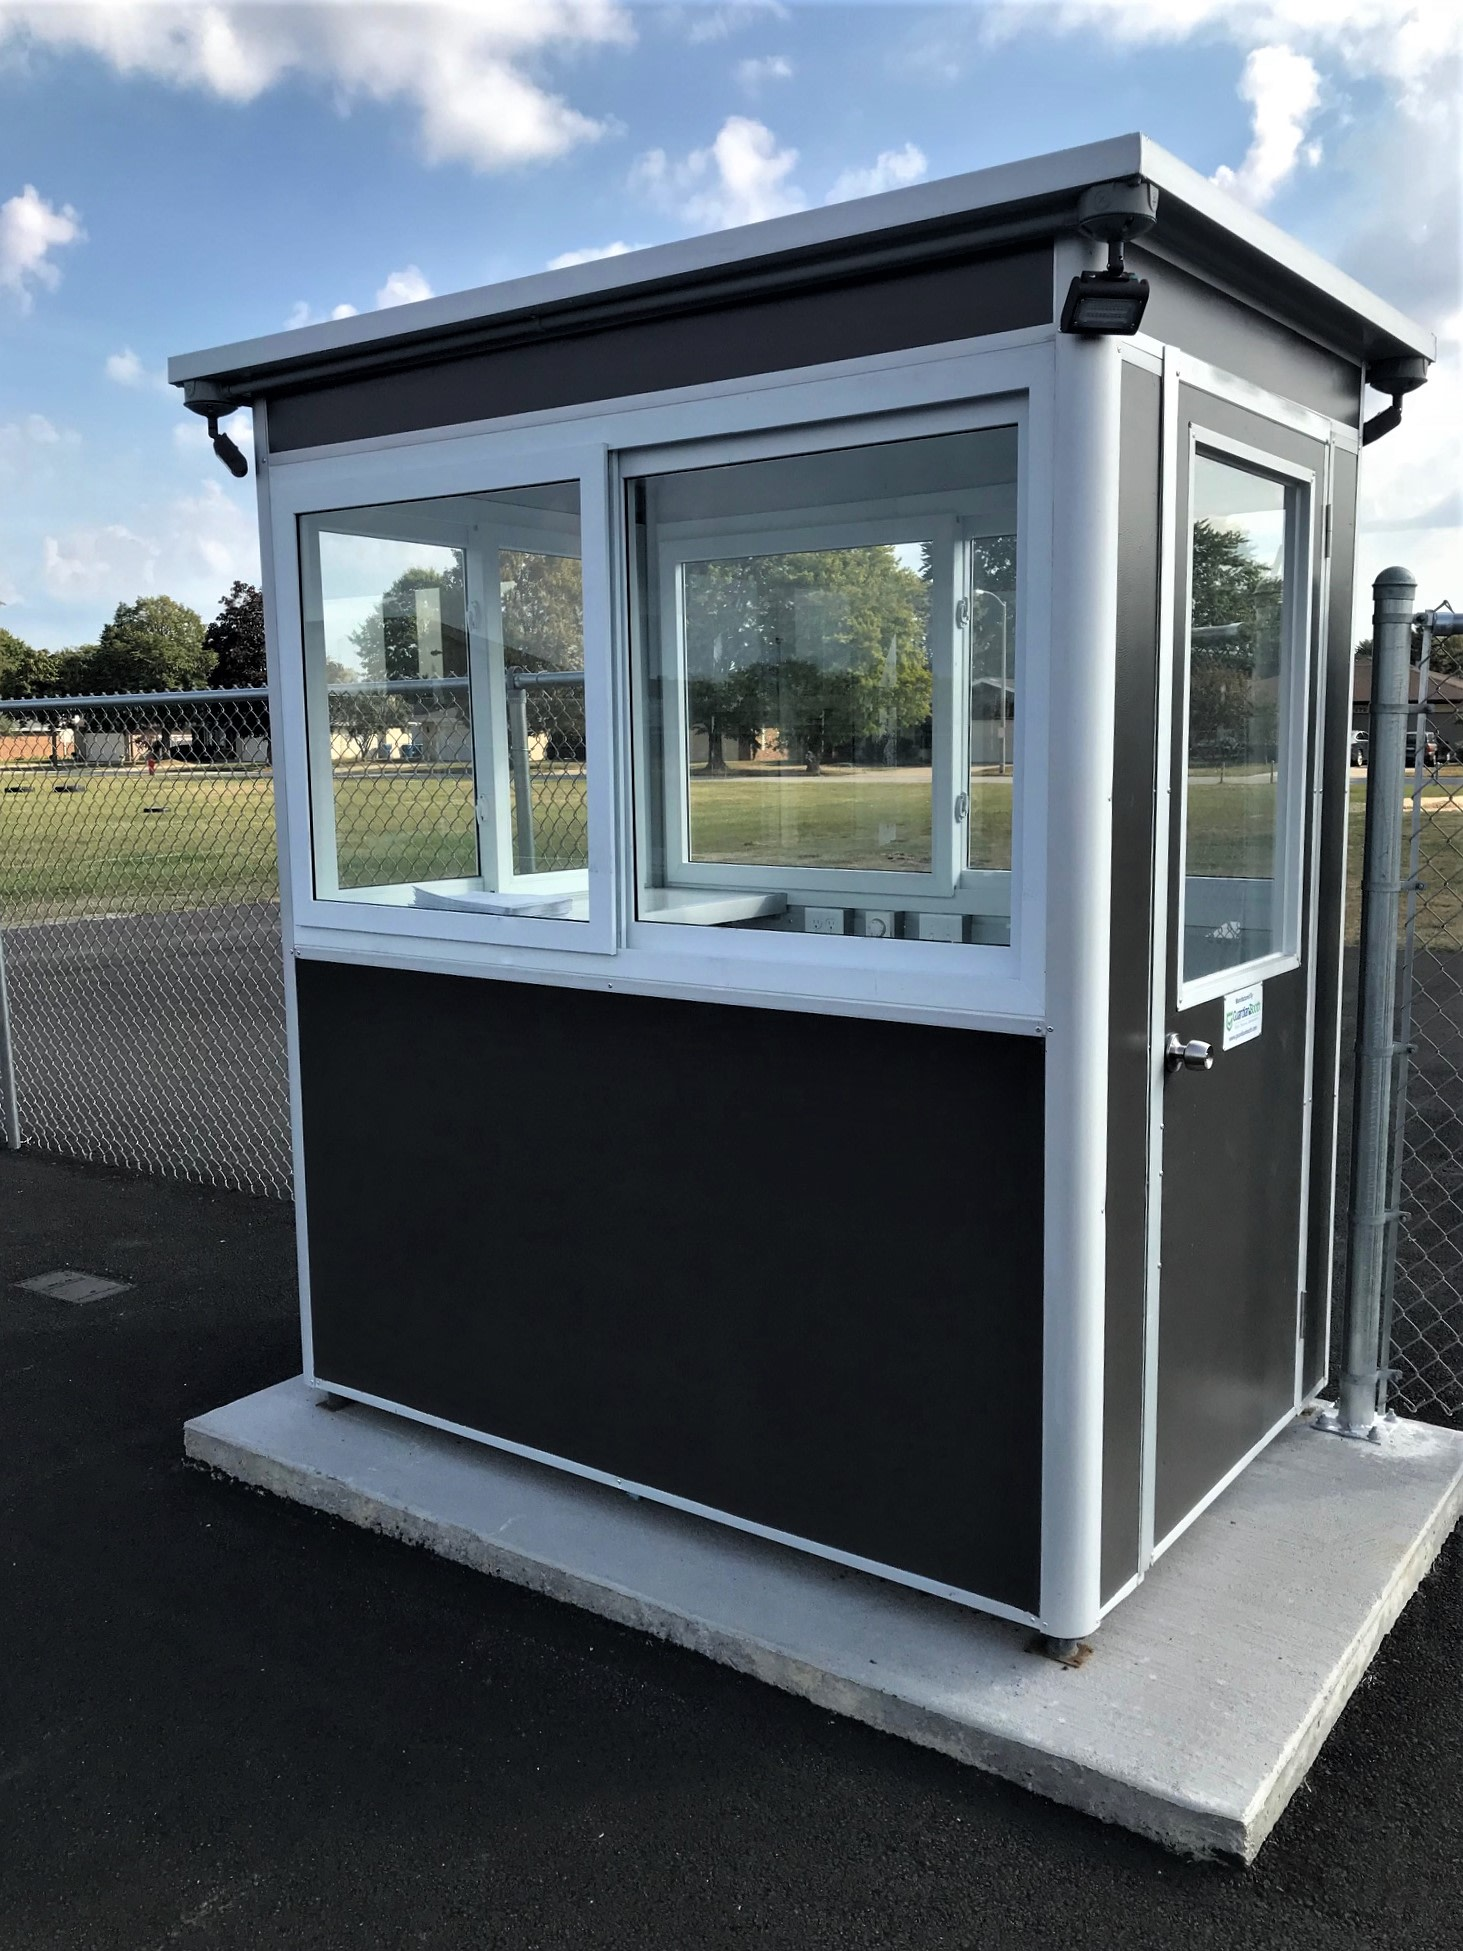 4x6 Ticket Booth in Harvey, IL with Custom Exterior Color, Outside Spotlights, Anchoring Brackets, Baseboard Heaters, and Built-in AC